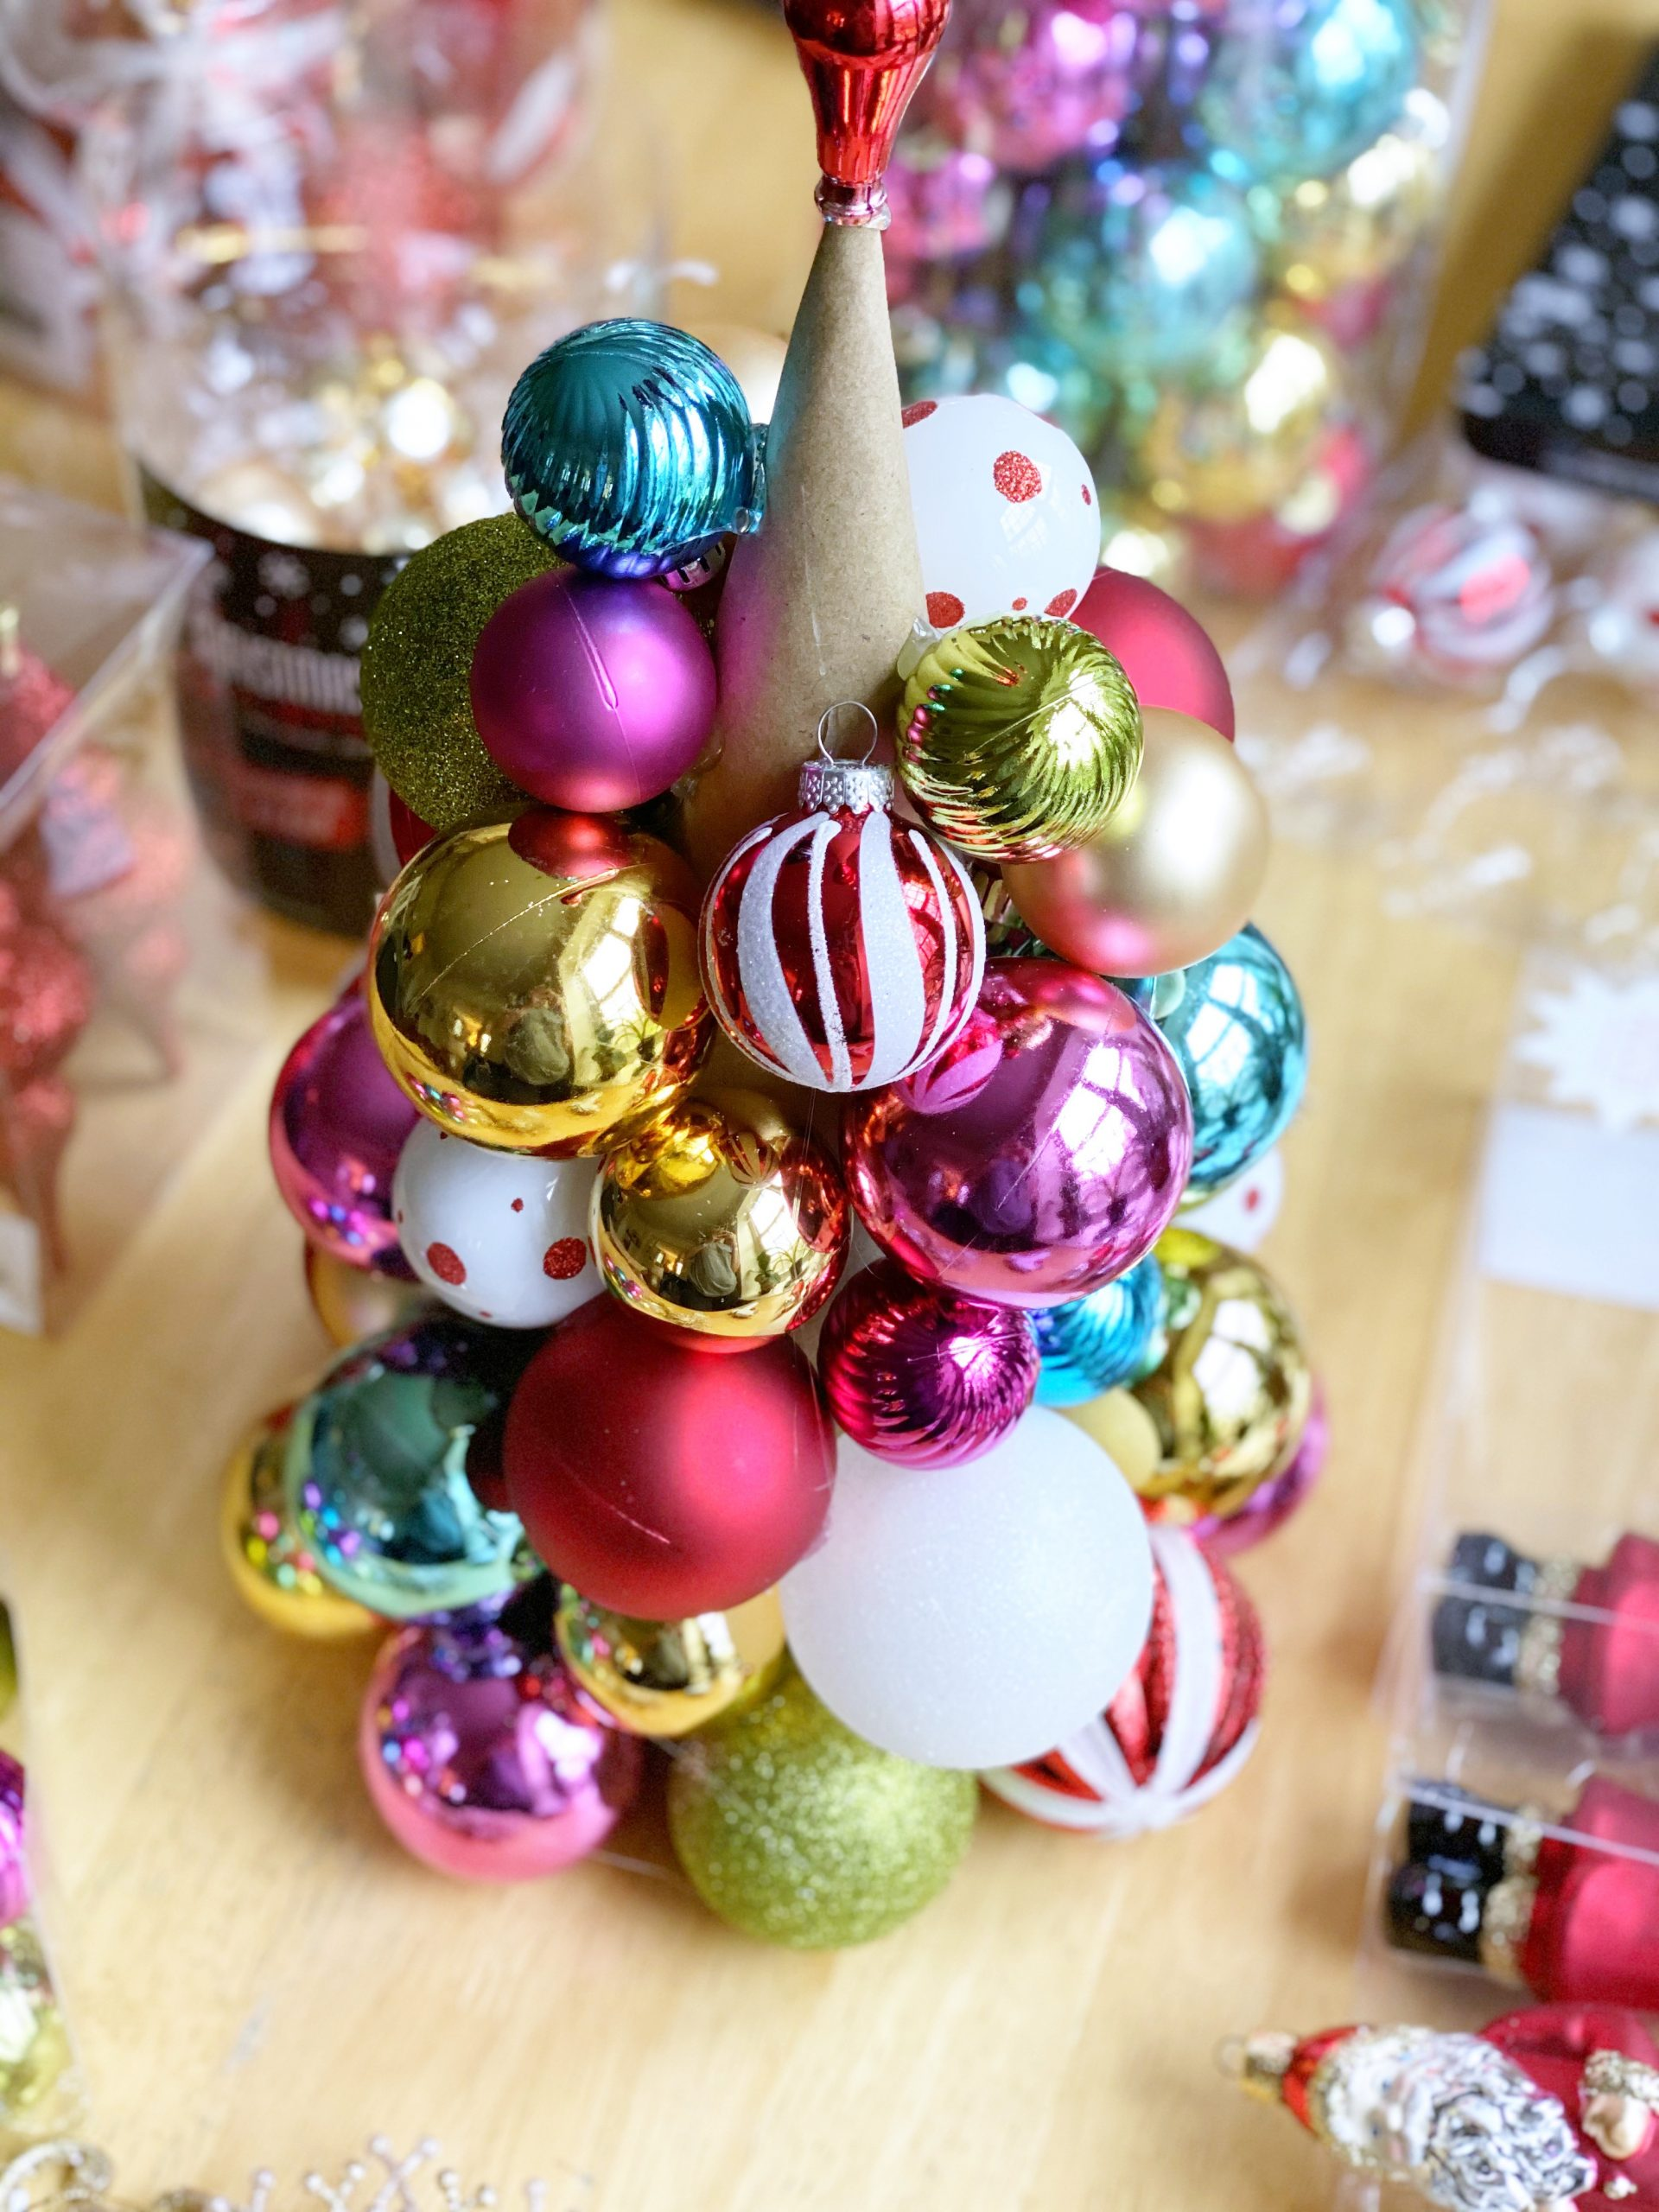 Handmade Holiday Ornament Topiary Tilly S Nest